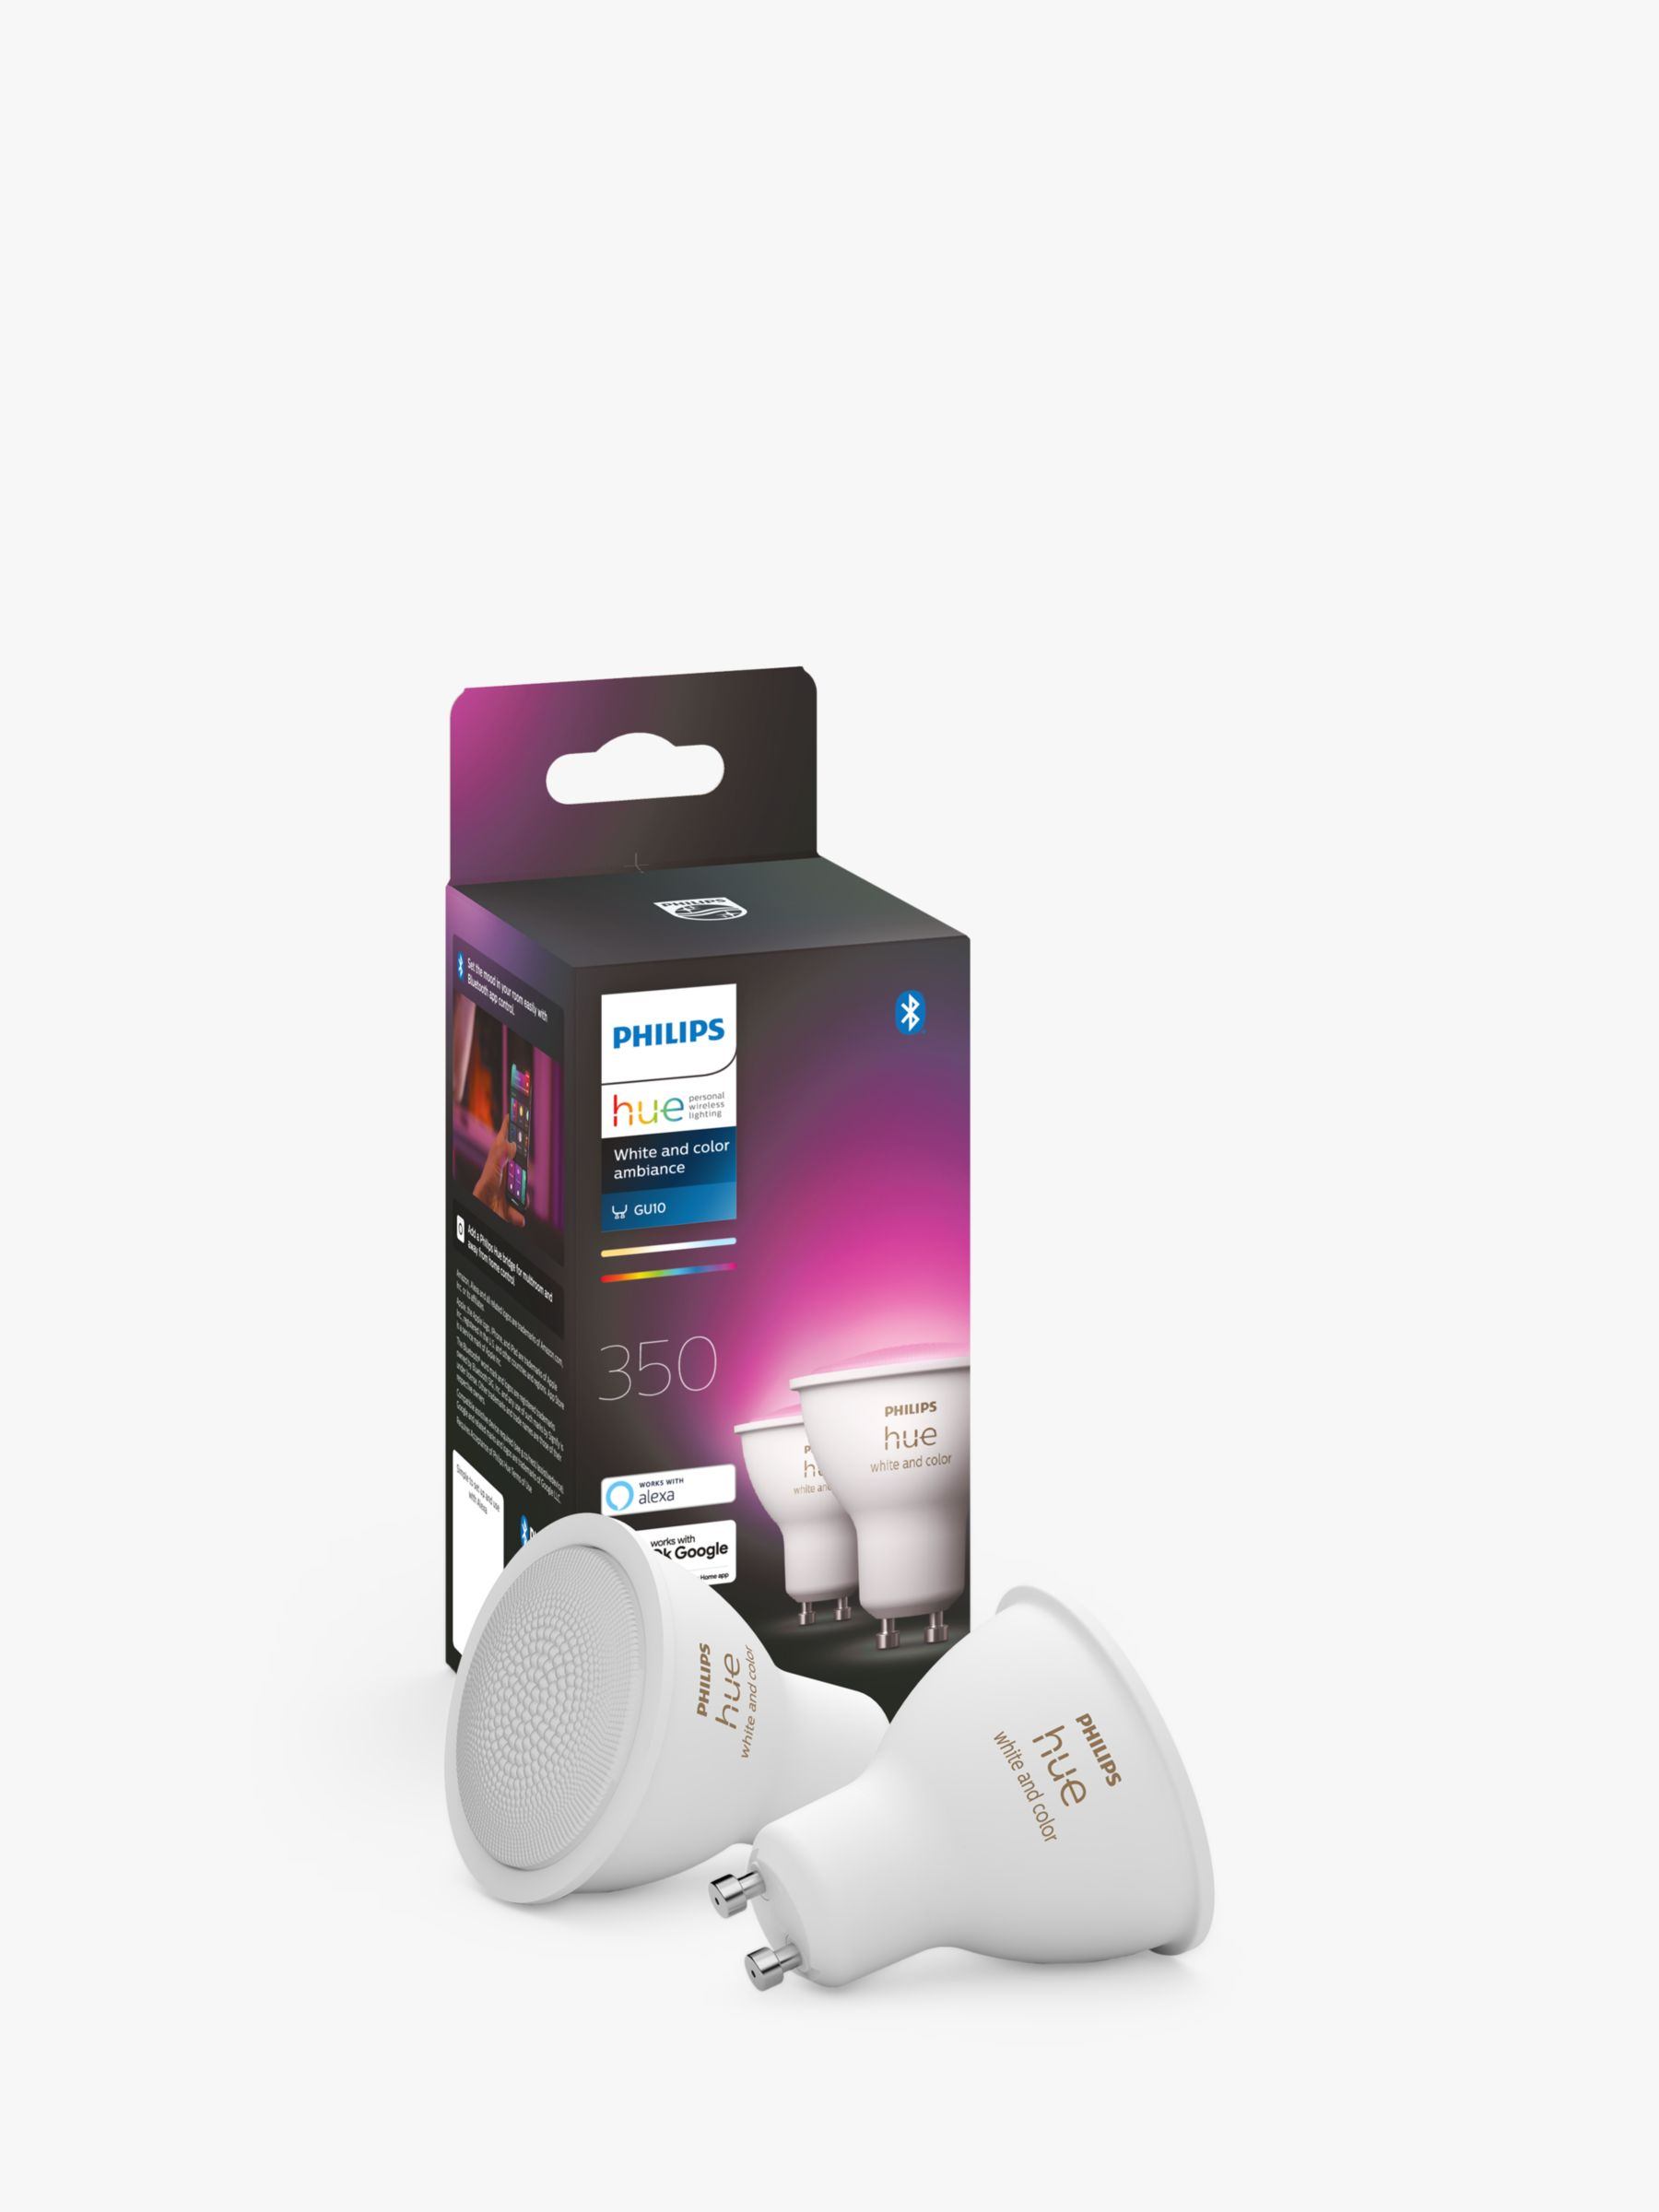 Philips Philips Hue White and Colour Ambiance Wireless Lighting LED Colour Changing Light Bulb with Bluetooth, 5.7W GU10 Bulb, Pack of 2